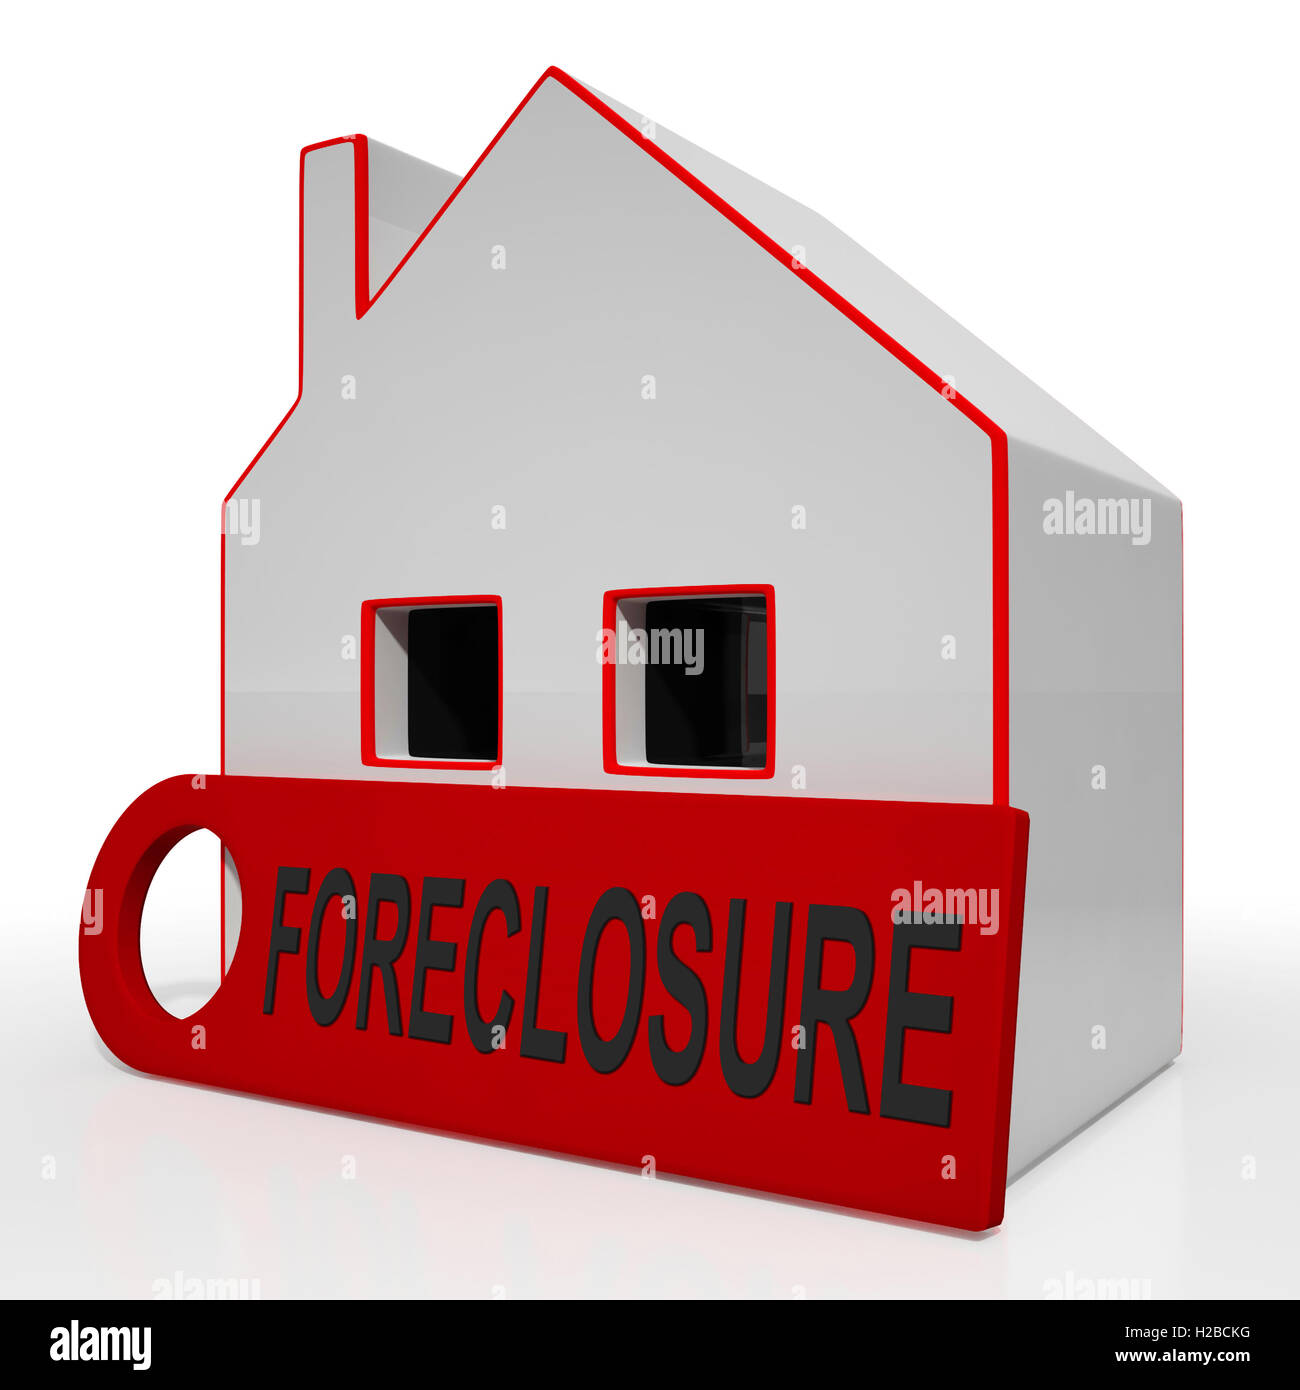 foreclosure house shows repayments stopped and repossession by l